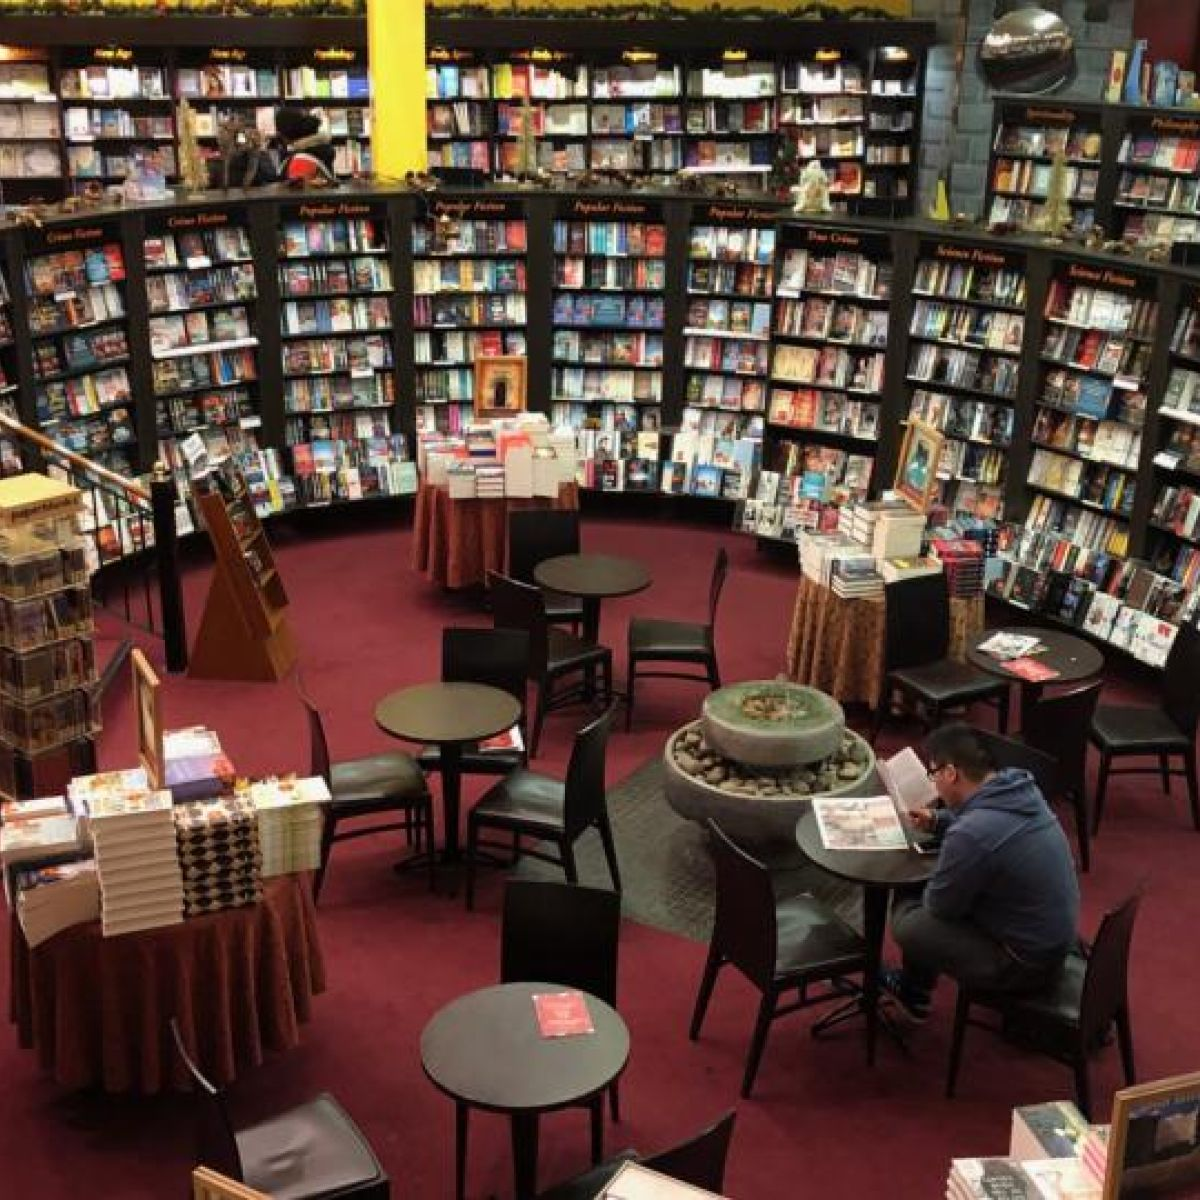 35 of the best independent bookshops in Ireland